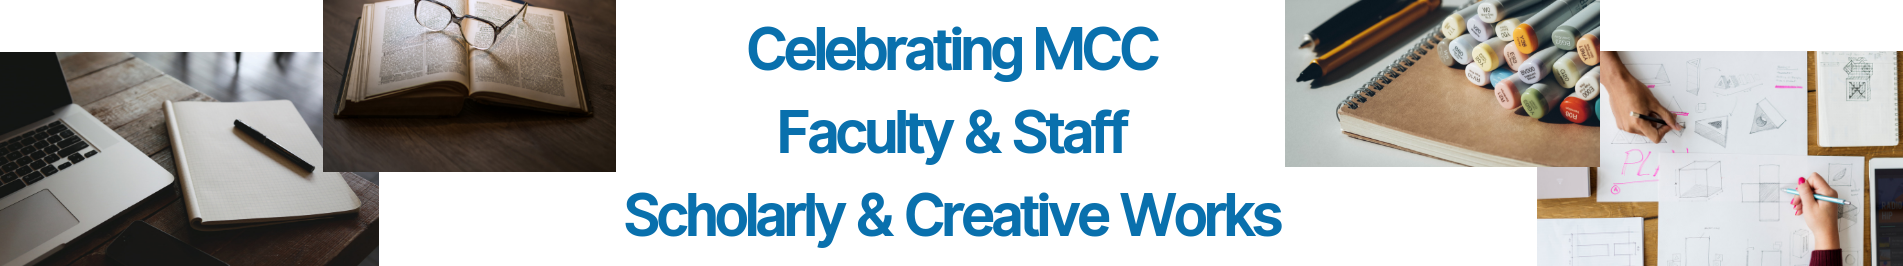 Celebrating MCC: Staff and Faculty Scholarly and Creative Works